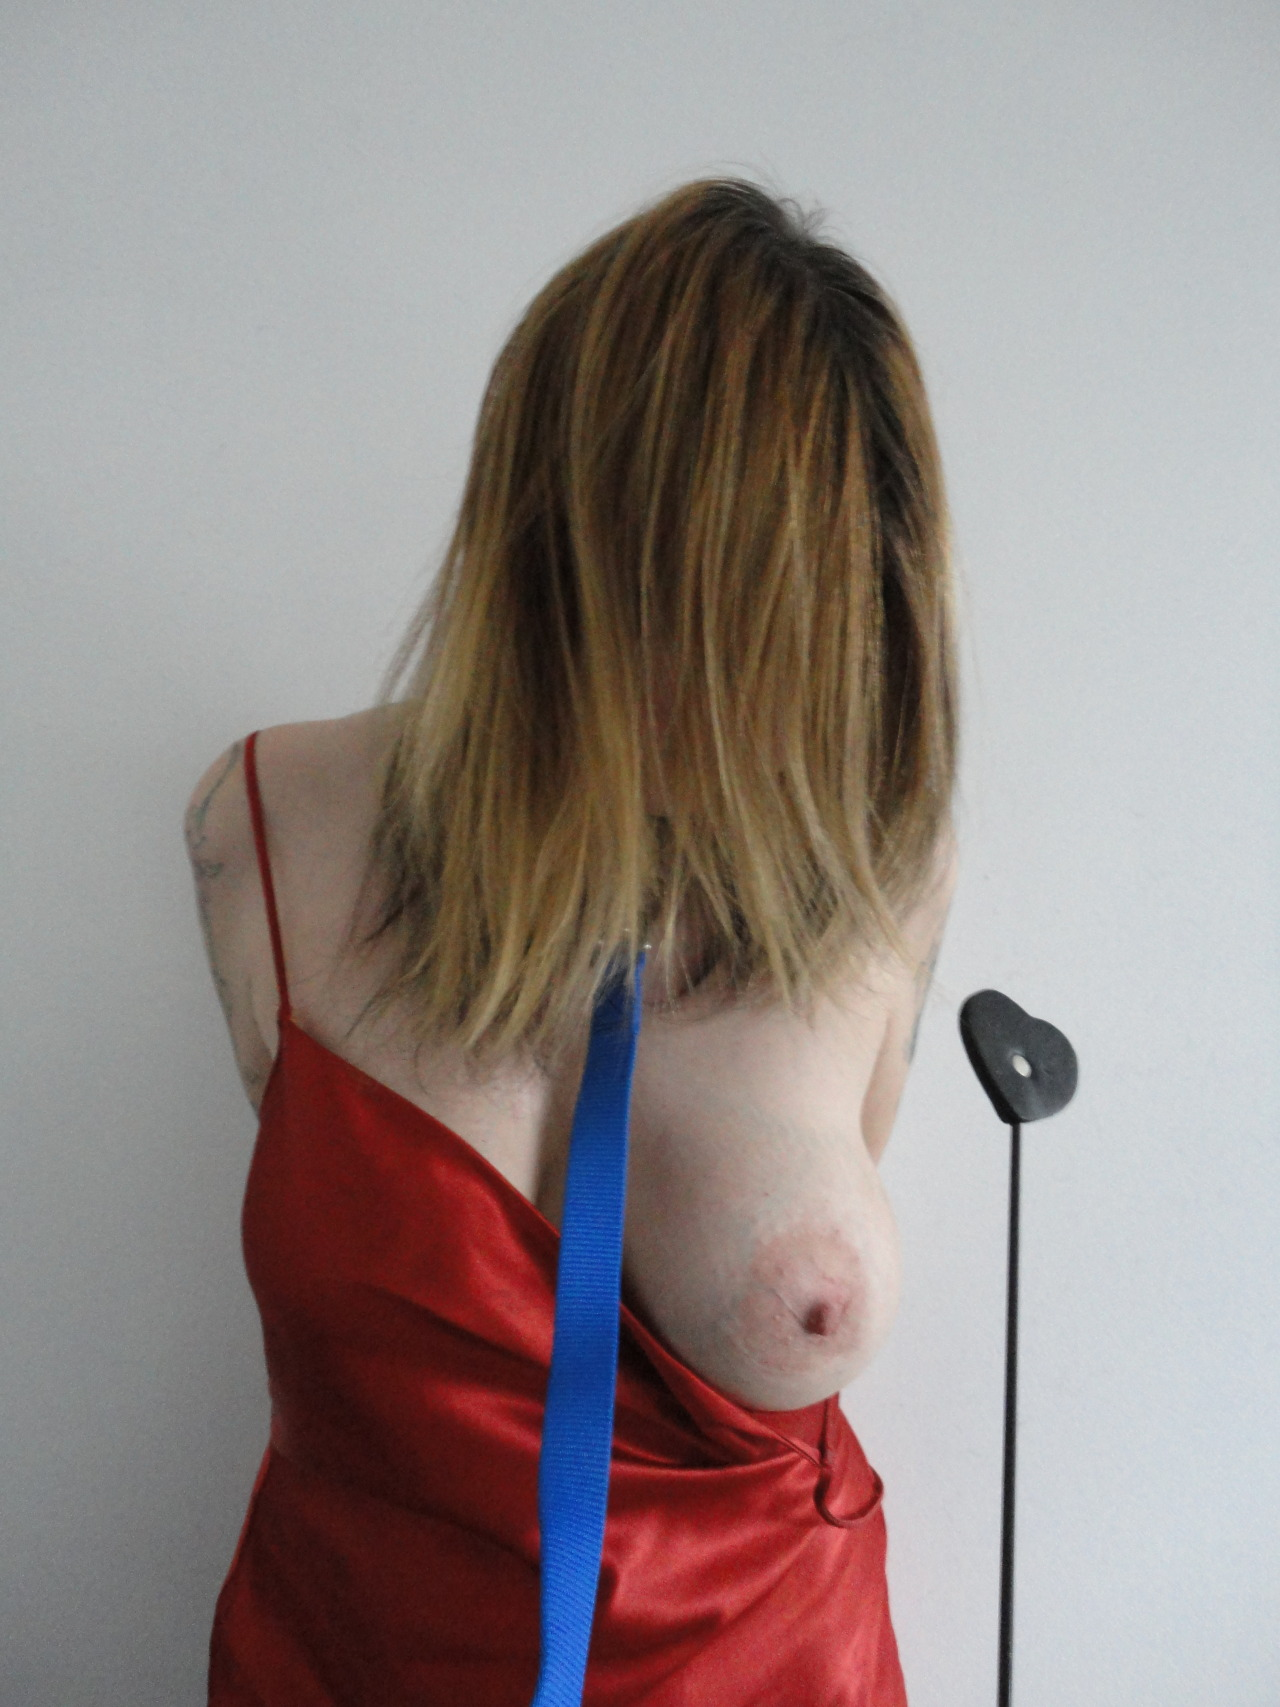 Red Slip, blue leash, and riding crop of love